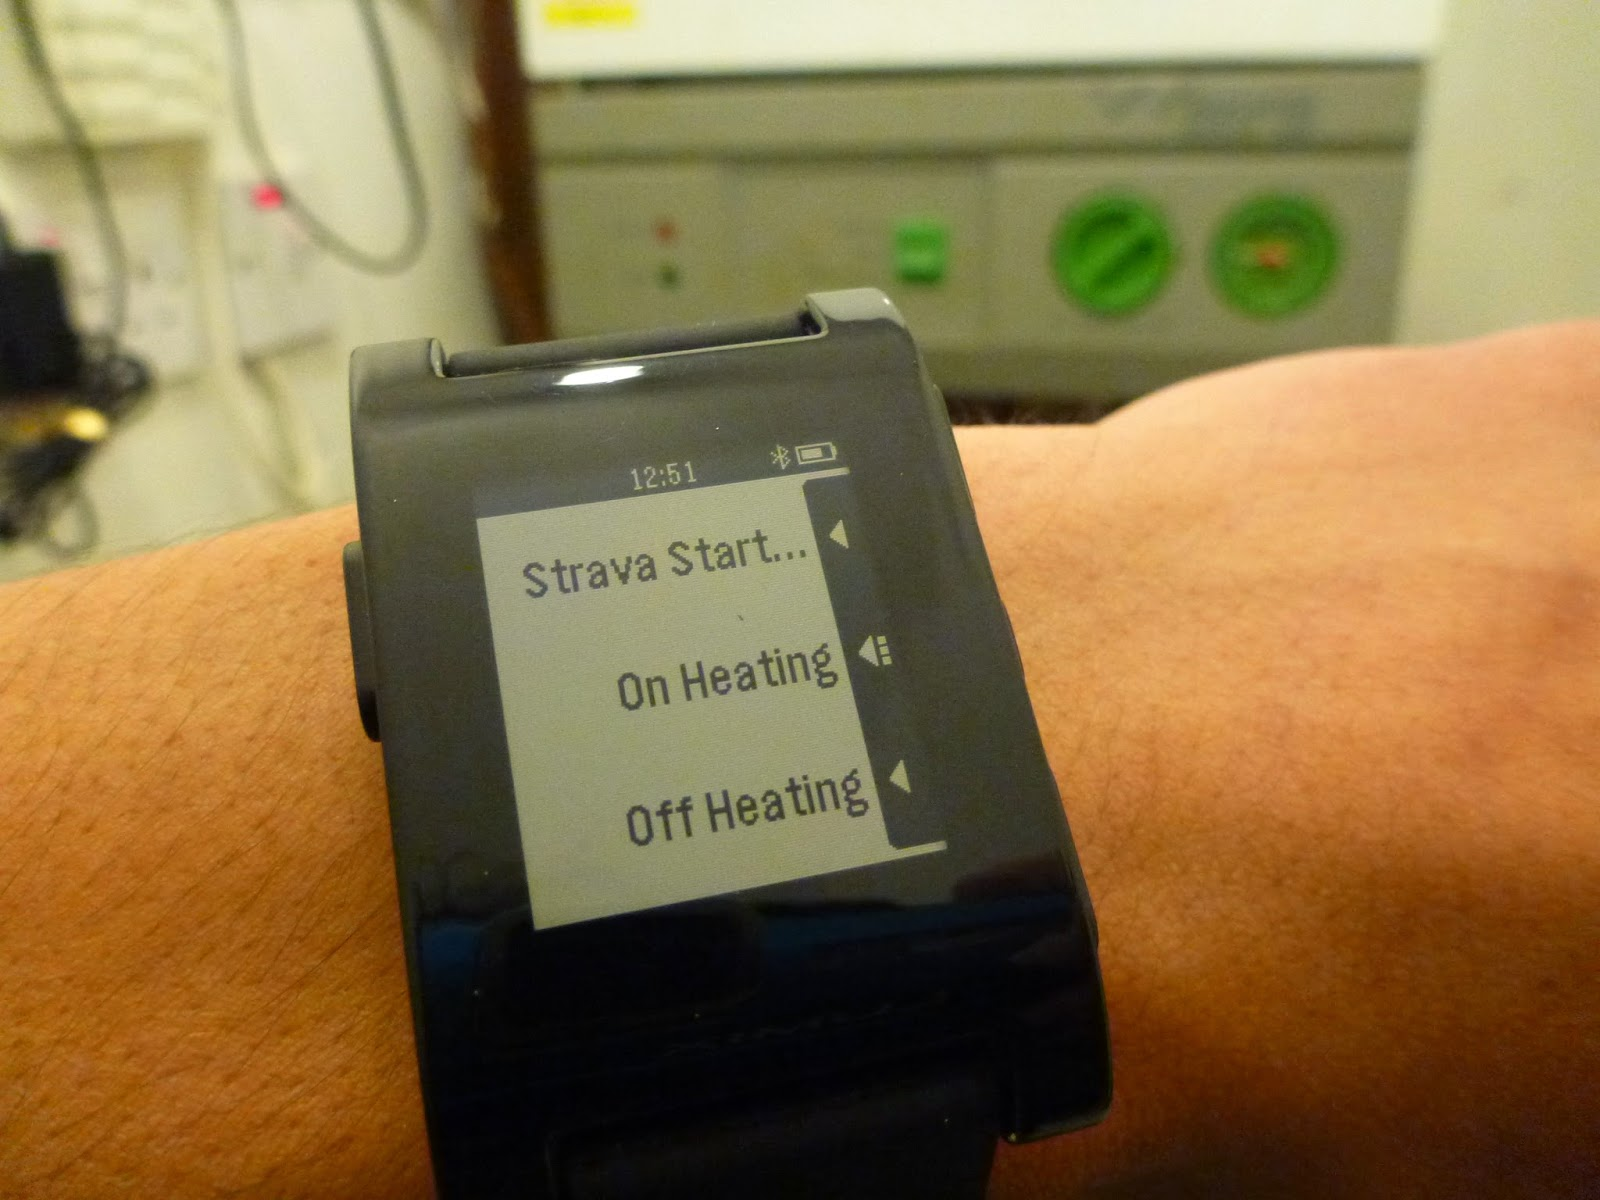 ARCHIVE: : Pebble Smart Watch Emoncms Heating Control Demo